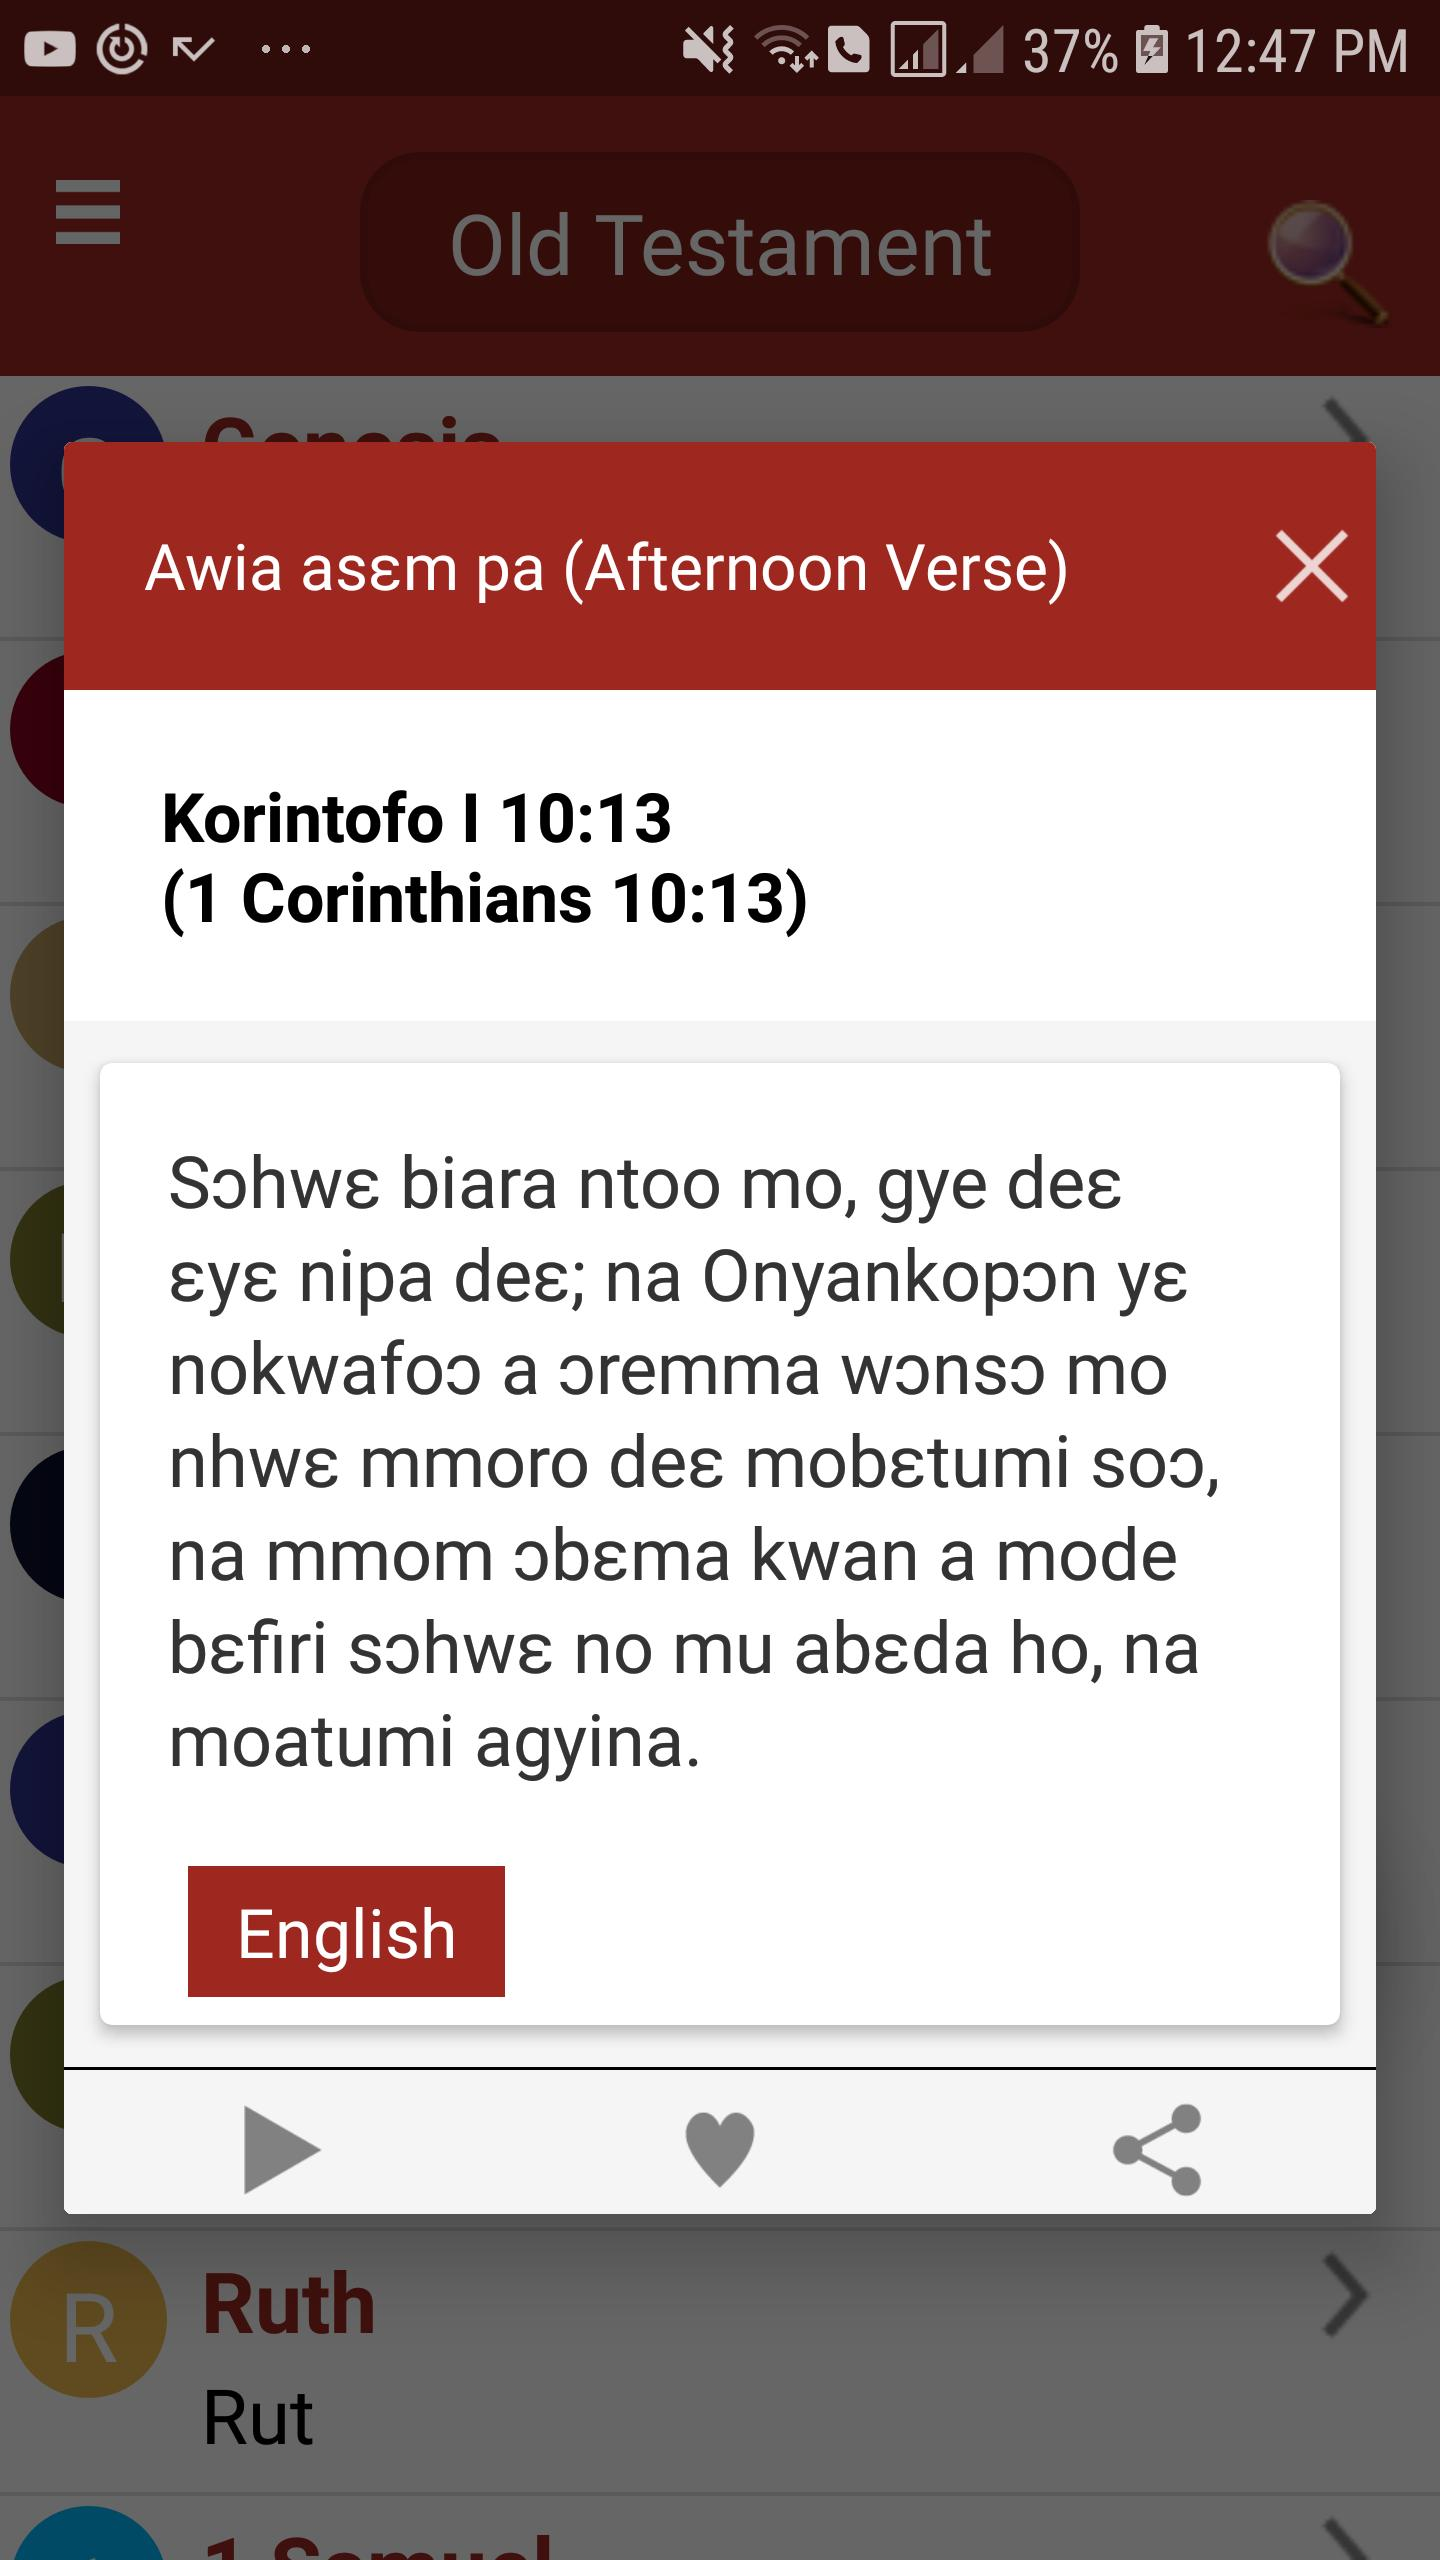 English & Twi Bible Offline + Audio for Android - APK Download